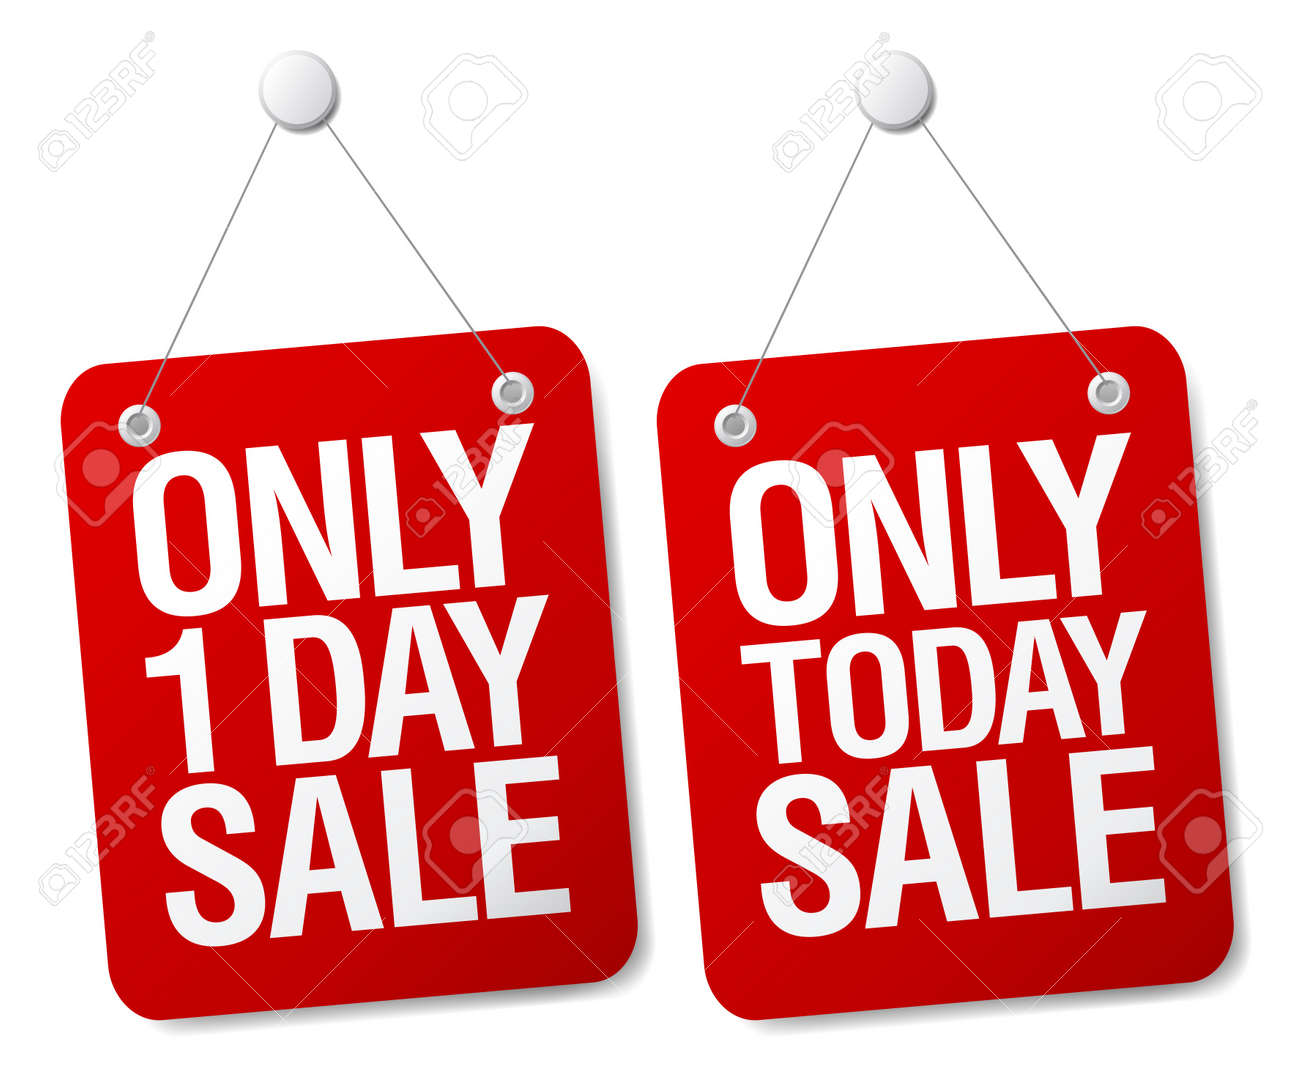 Only 1 day sale signs set. Stock Vector - 13716704